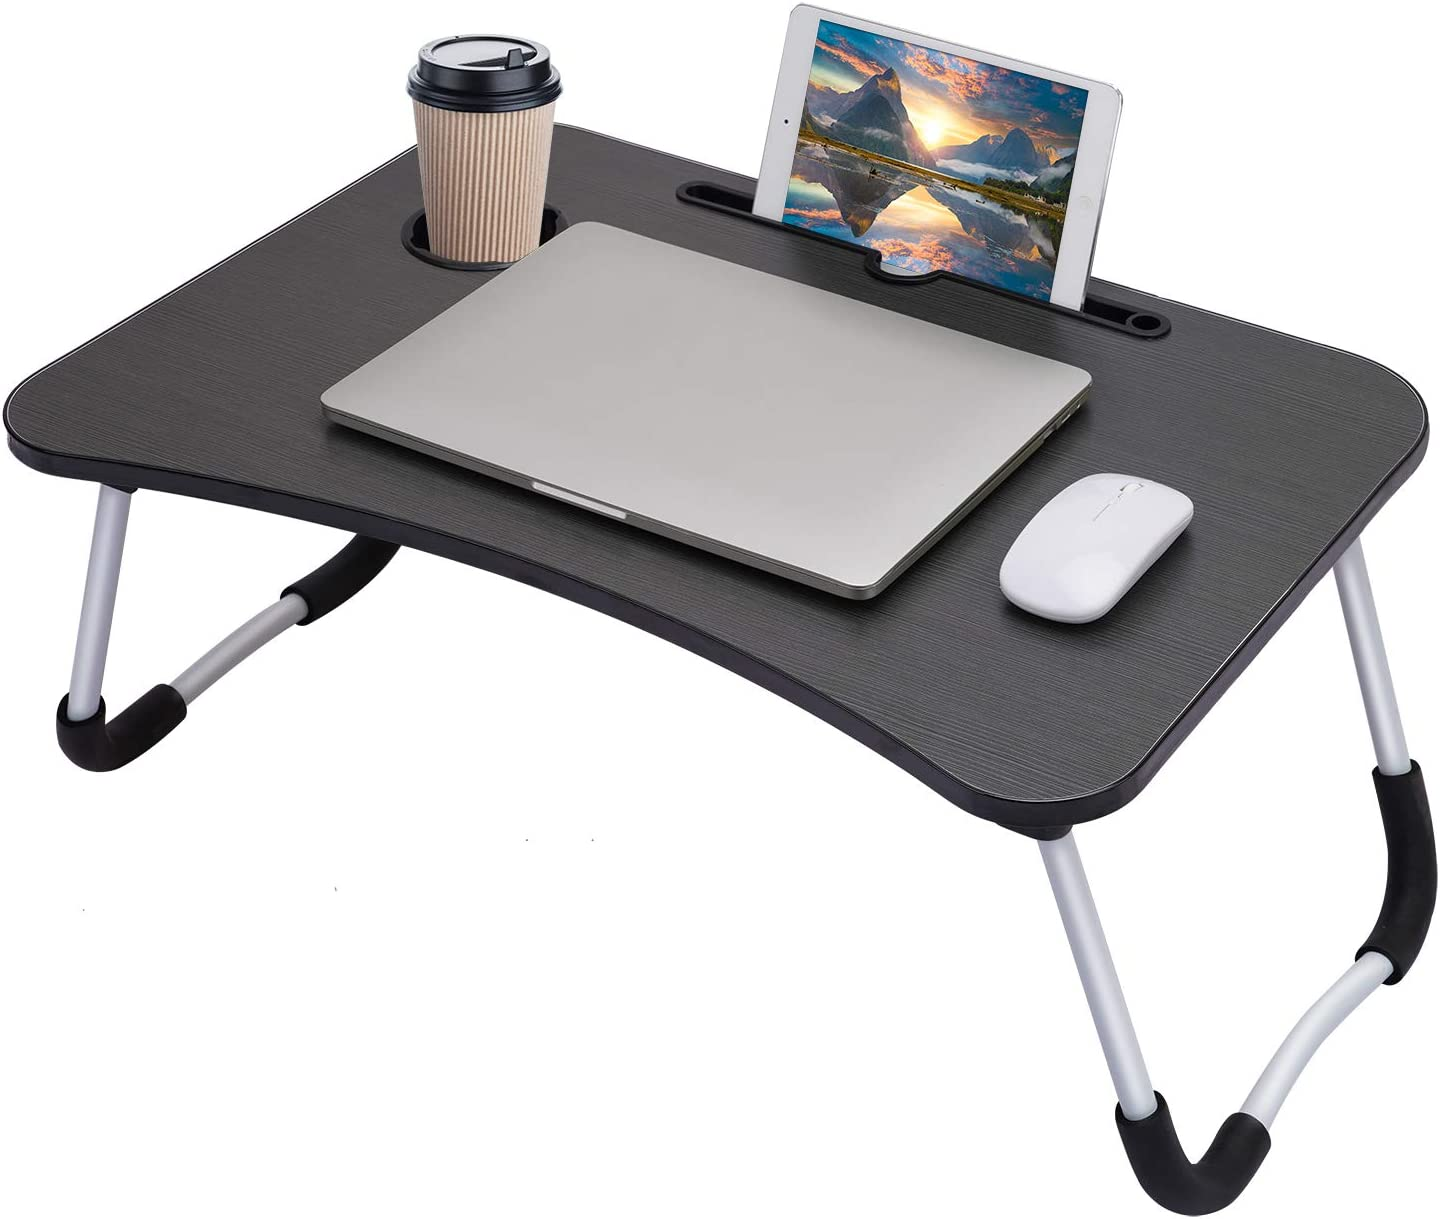 Hossejoy Foldable Laptop Table Breakfast Tray Bed Serving famous Don't miss the campaign Lap